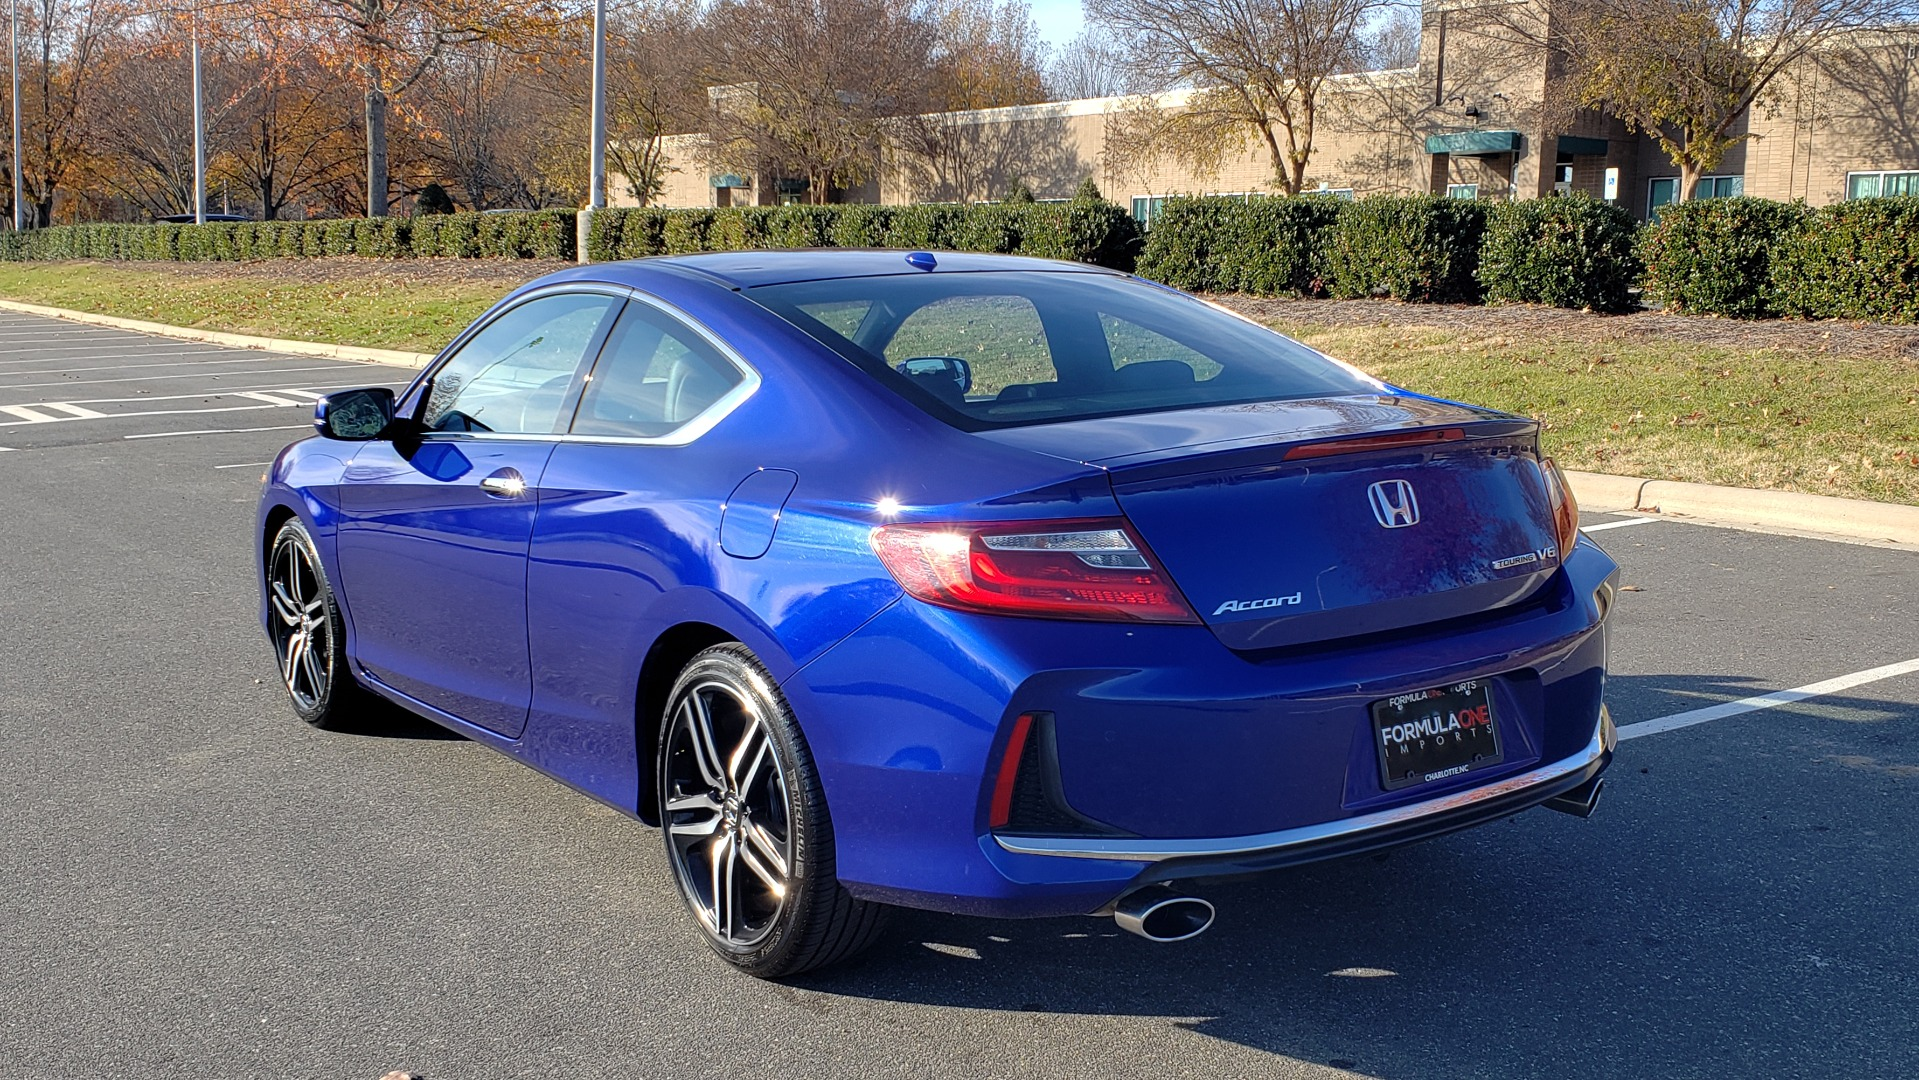 Used 2017 Honda ACCORD COUPE TOURING V6 / 2-DR / NAV / SUNROOF / LANEWATCH / CMBS for sale Sold at Formula Imports in Charlotte NC 28227 5